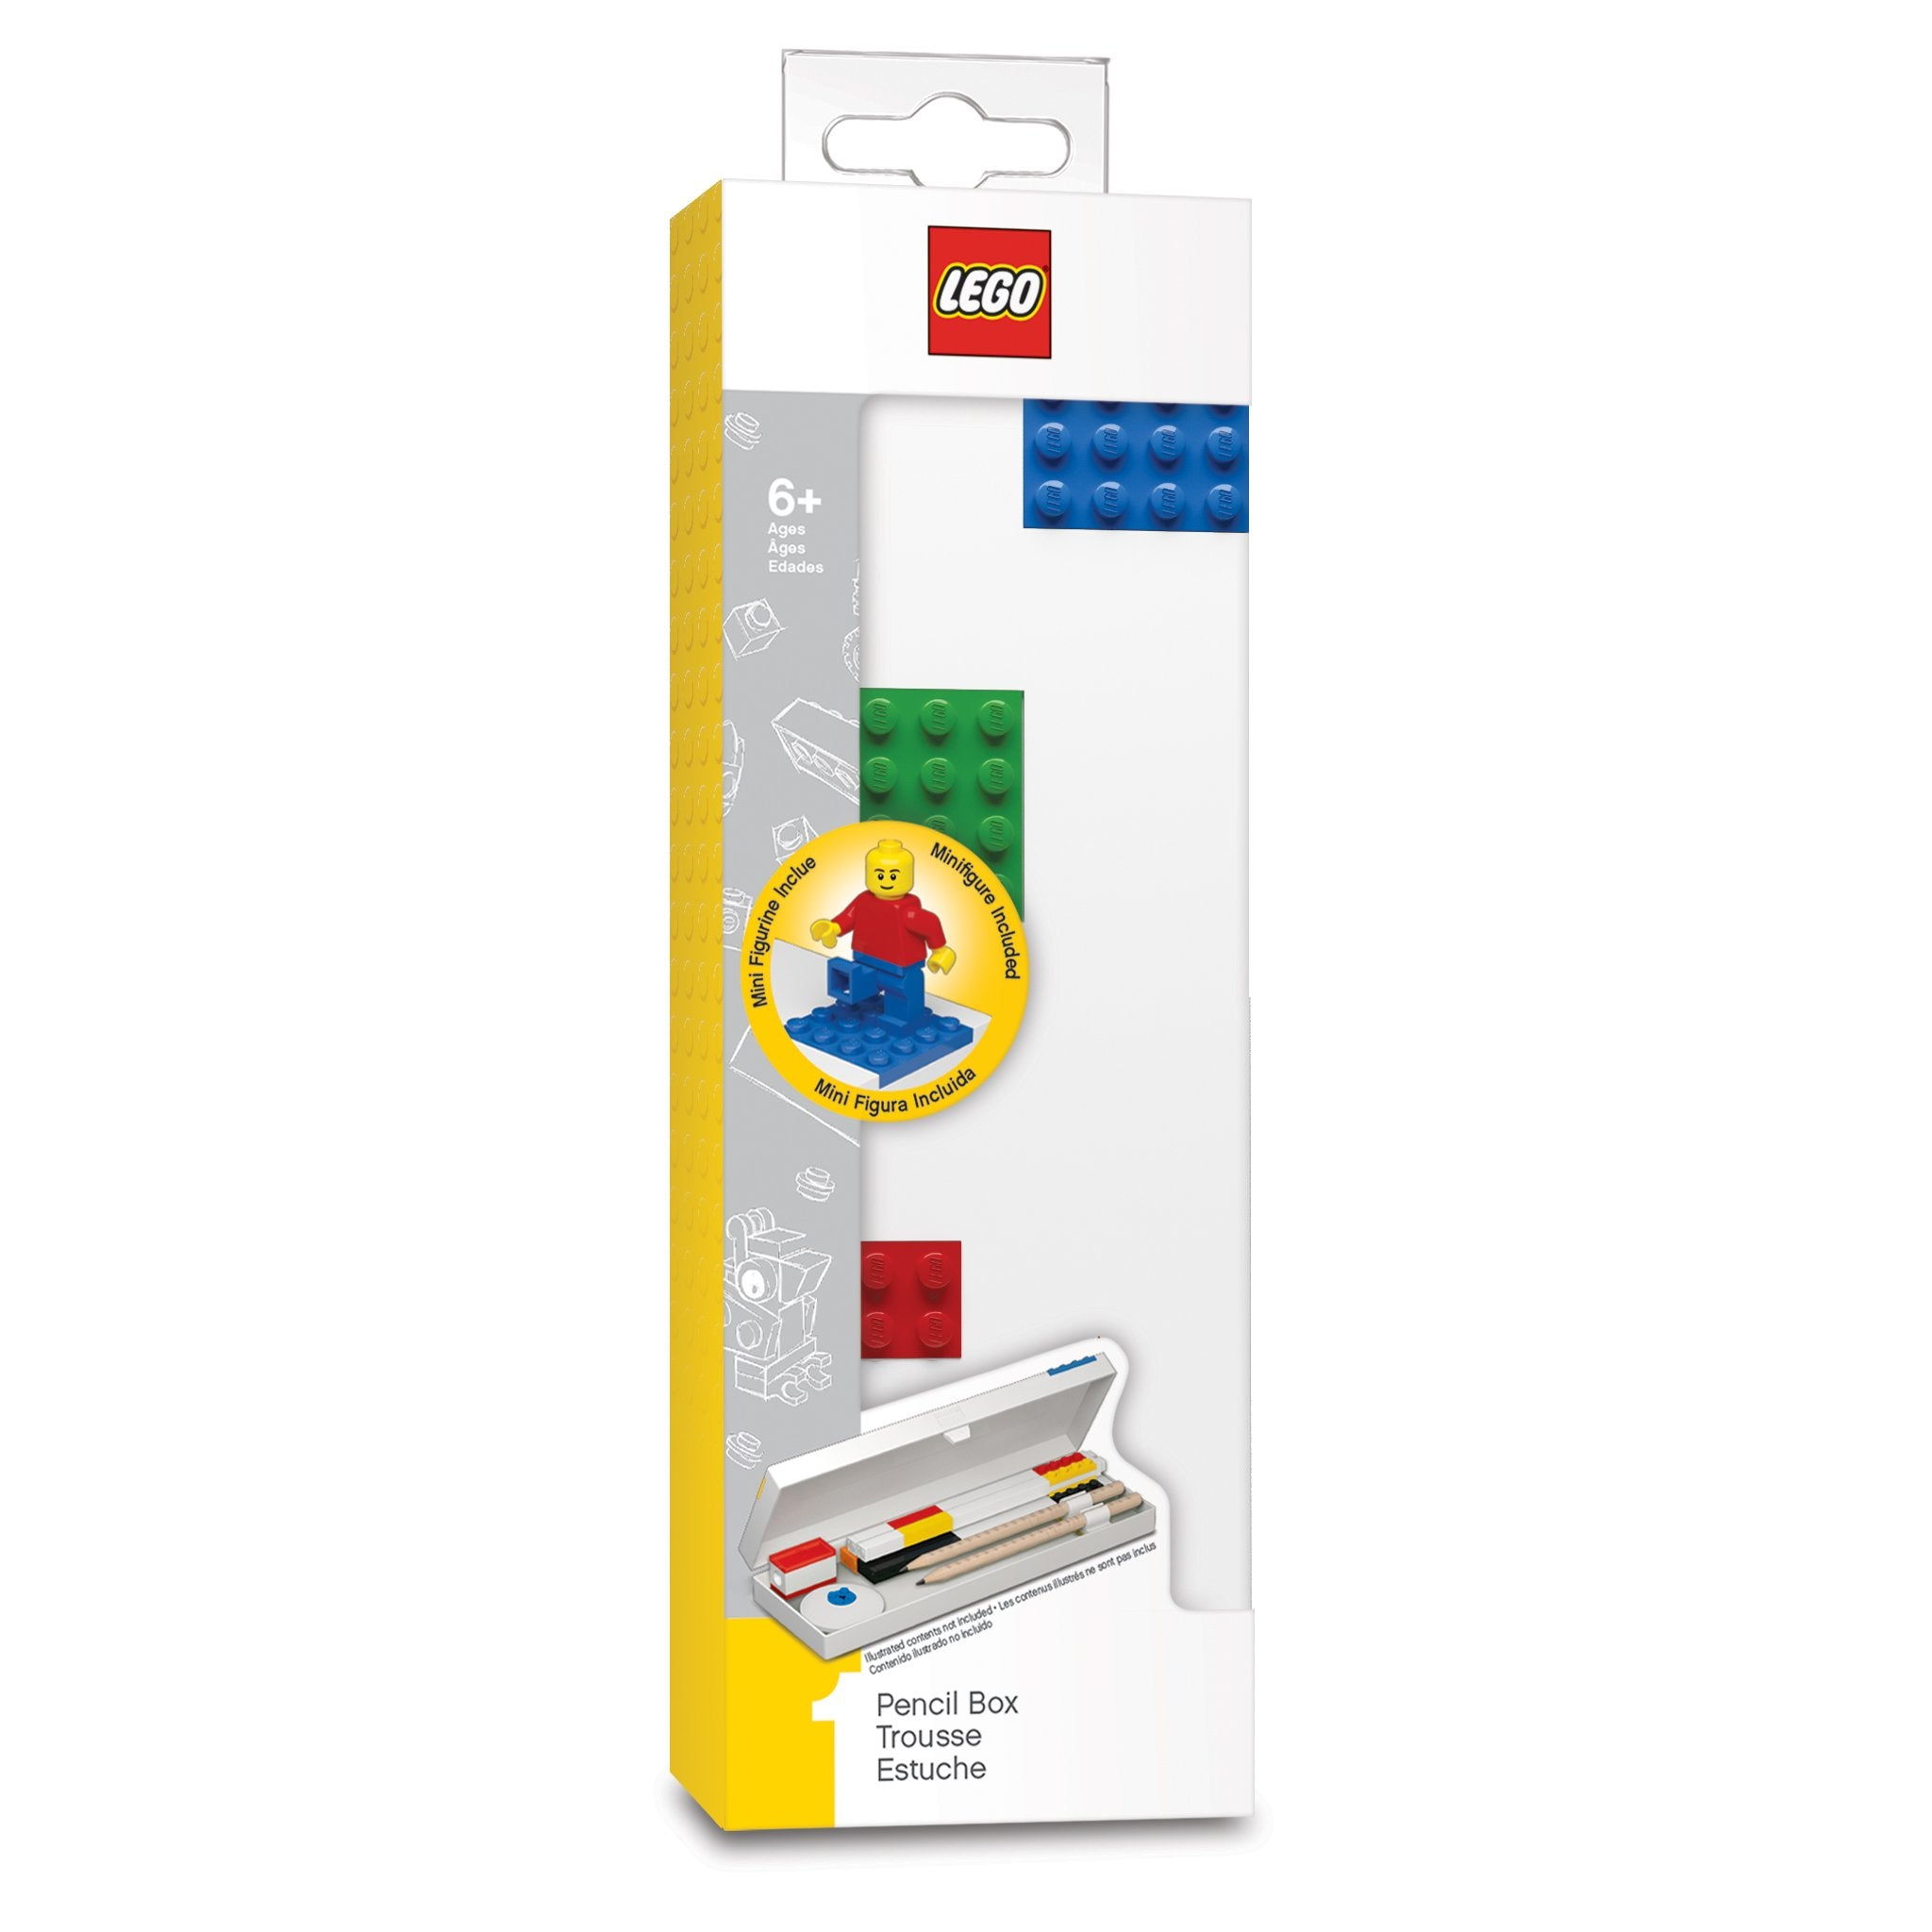 Lego Stationery - Pencil Box with Mini-figure